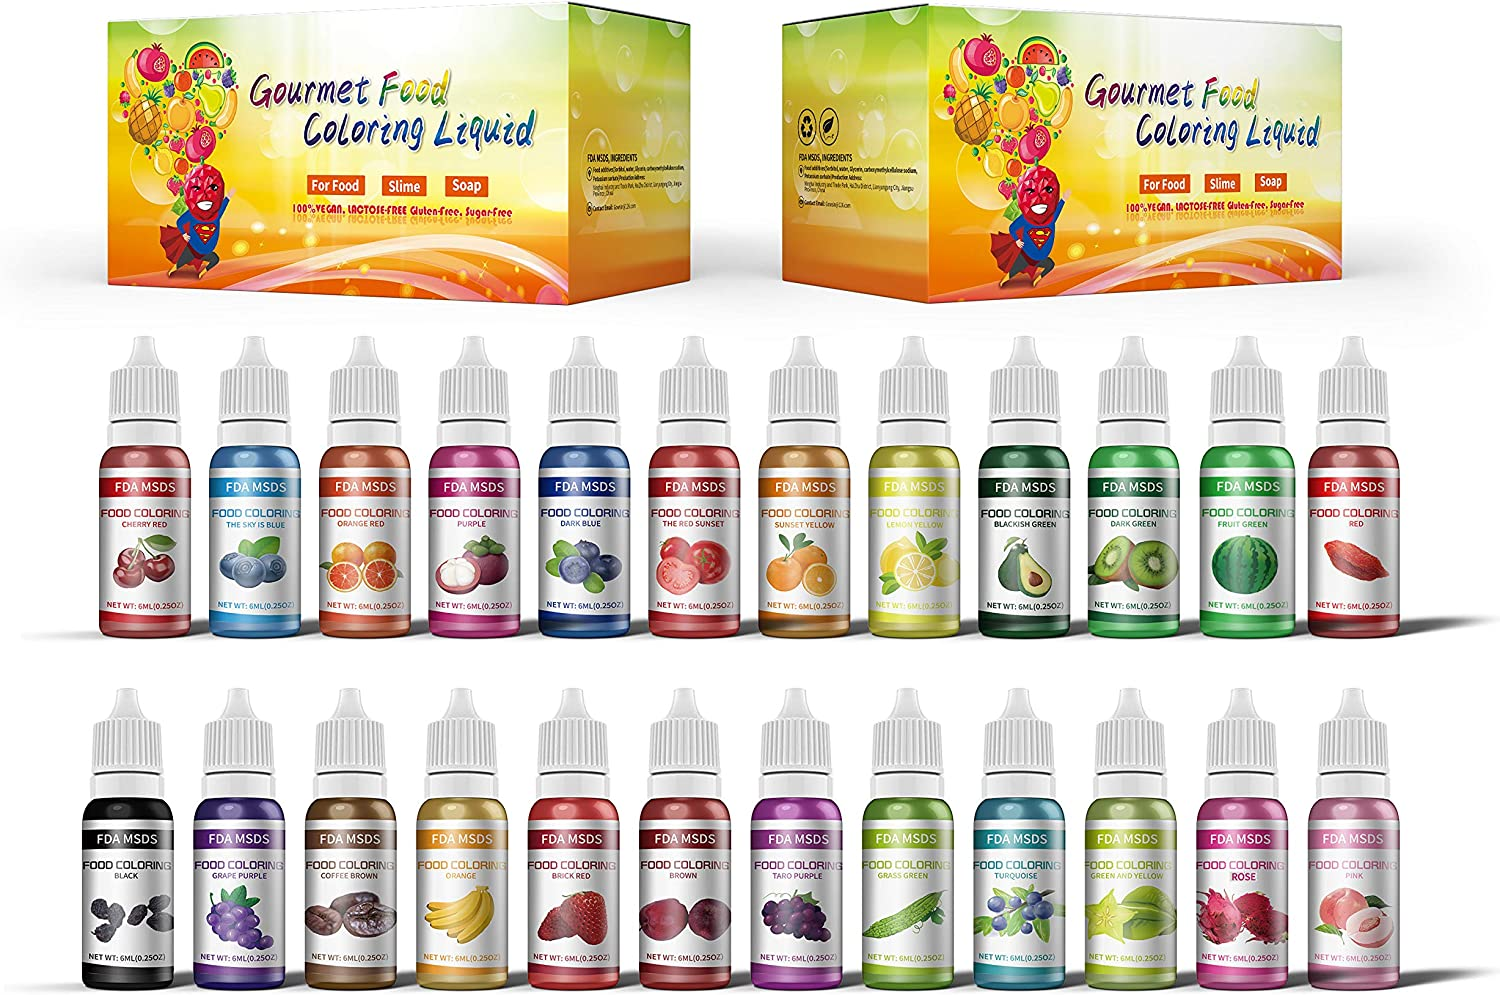 Food Coloring Set - 24 Color Liquid Dye for Baking Decorating, Fondant, Cooking, Icing or Making DIY Crafts